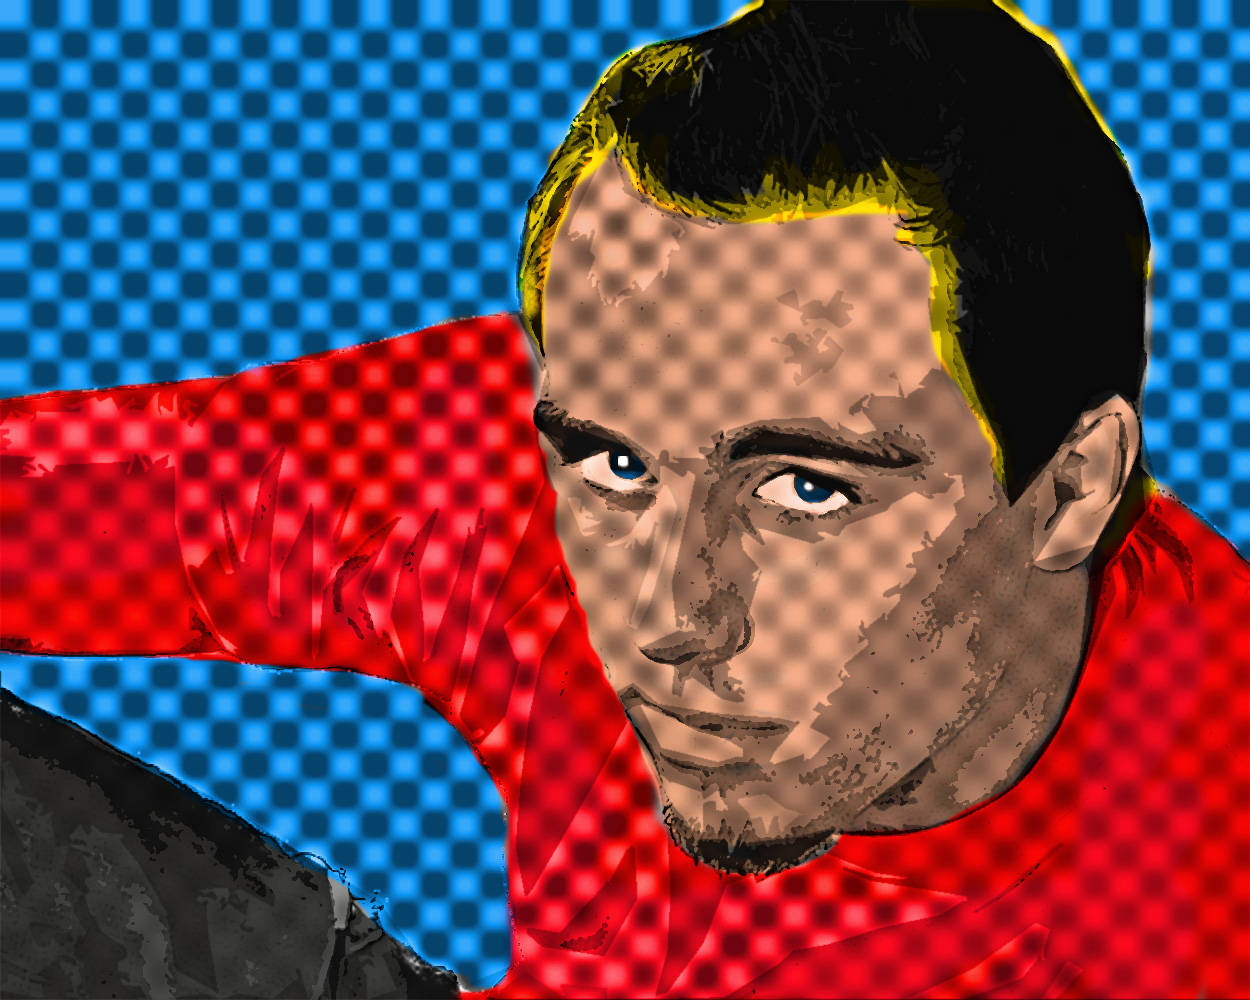 Ryan pop art